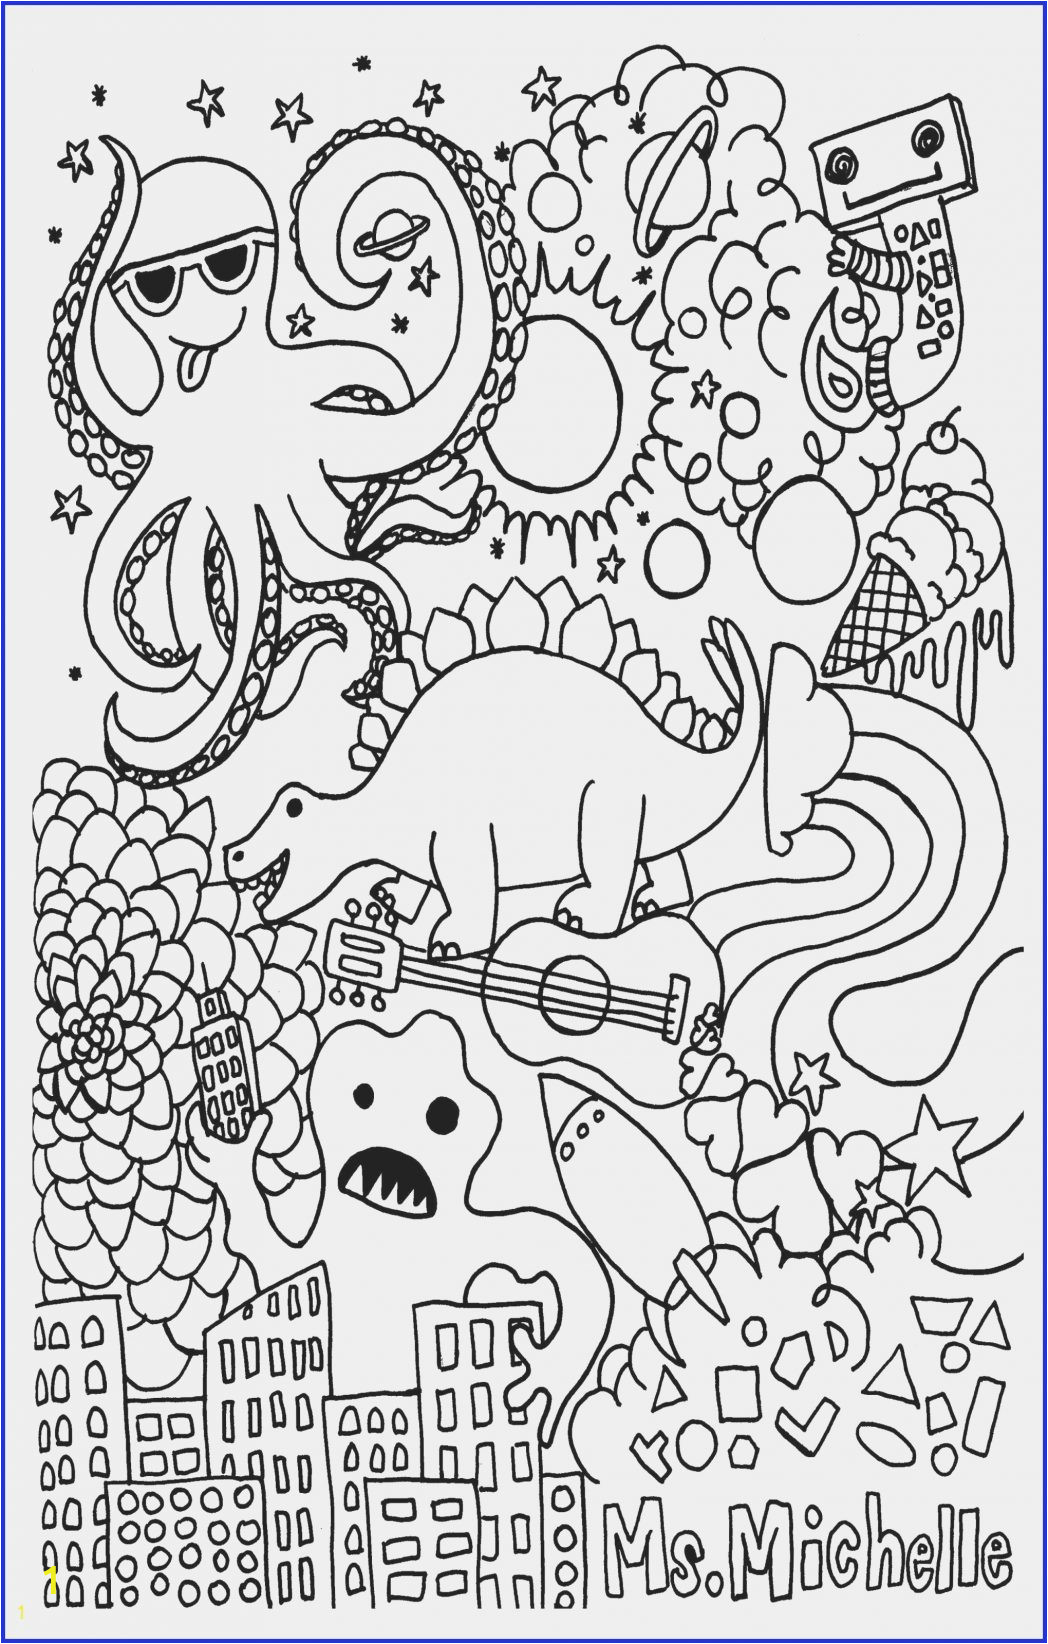 thomas christmas coloring lovely coloring fabulous mindfulnessring pages for kids book of thomas christmas coloring